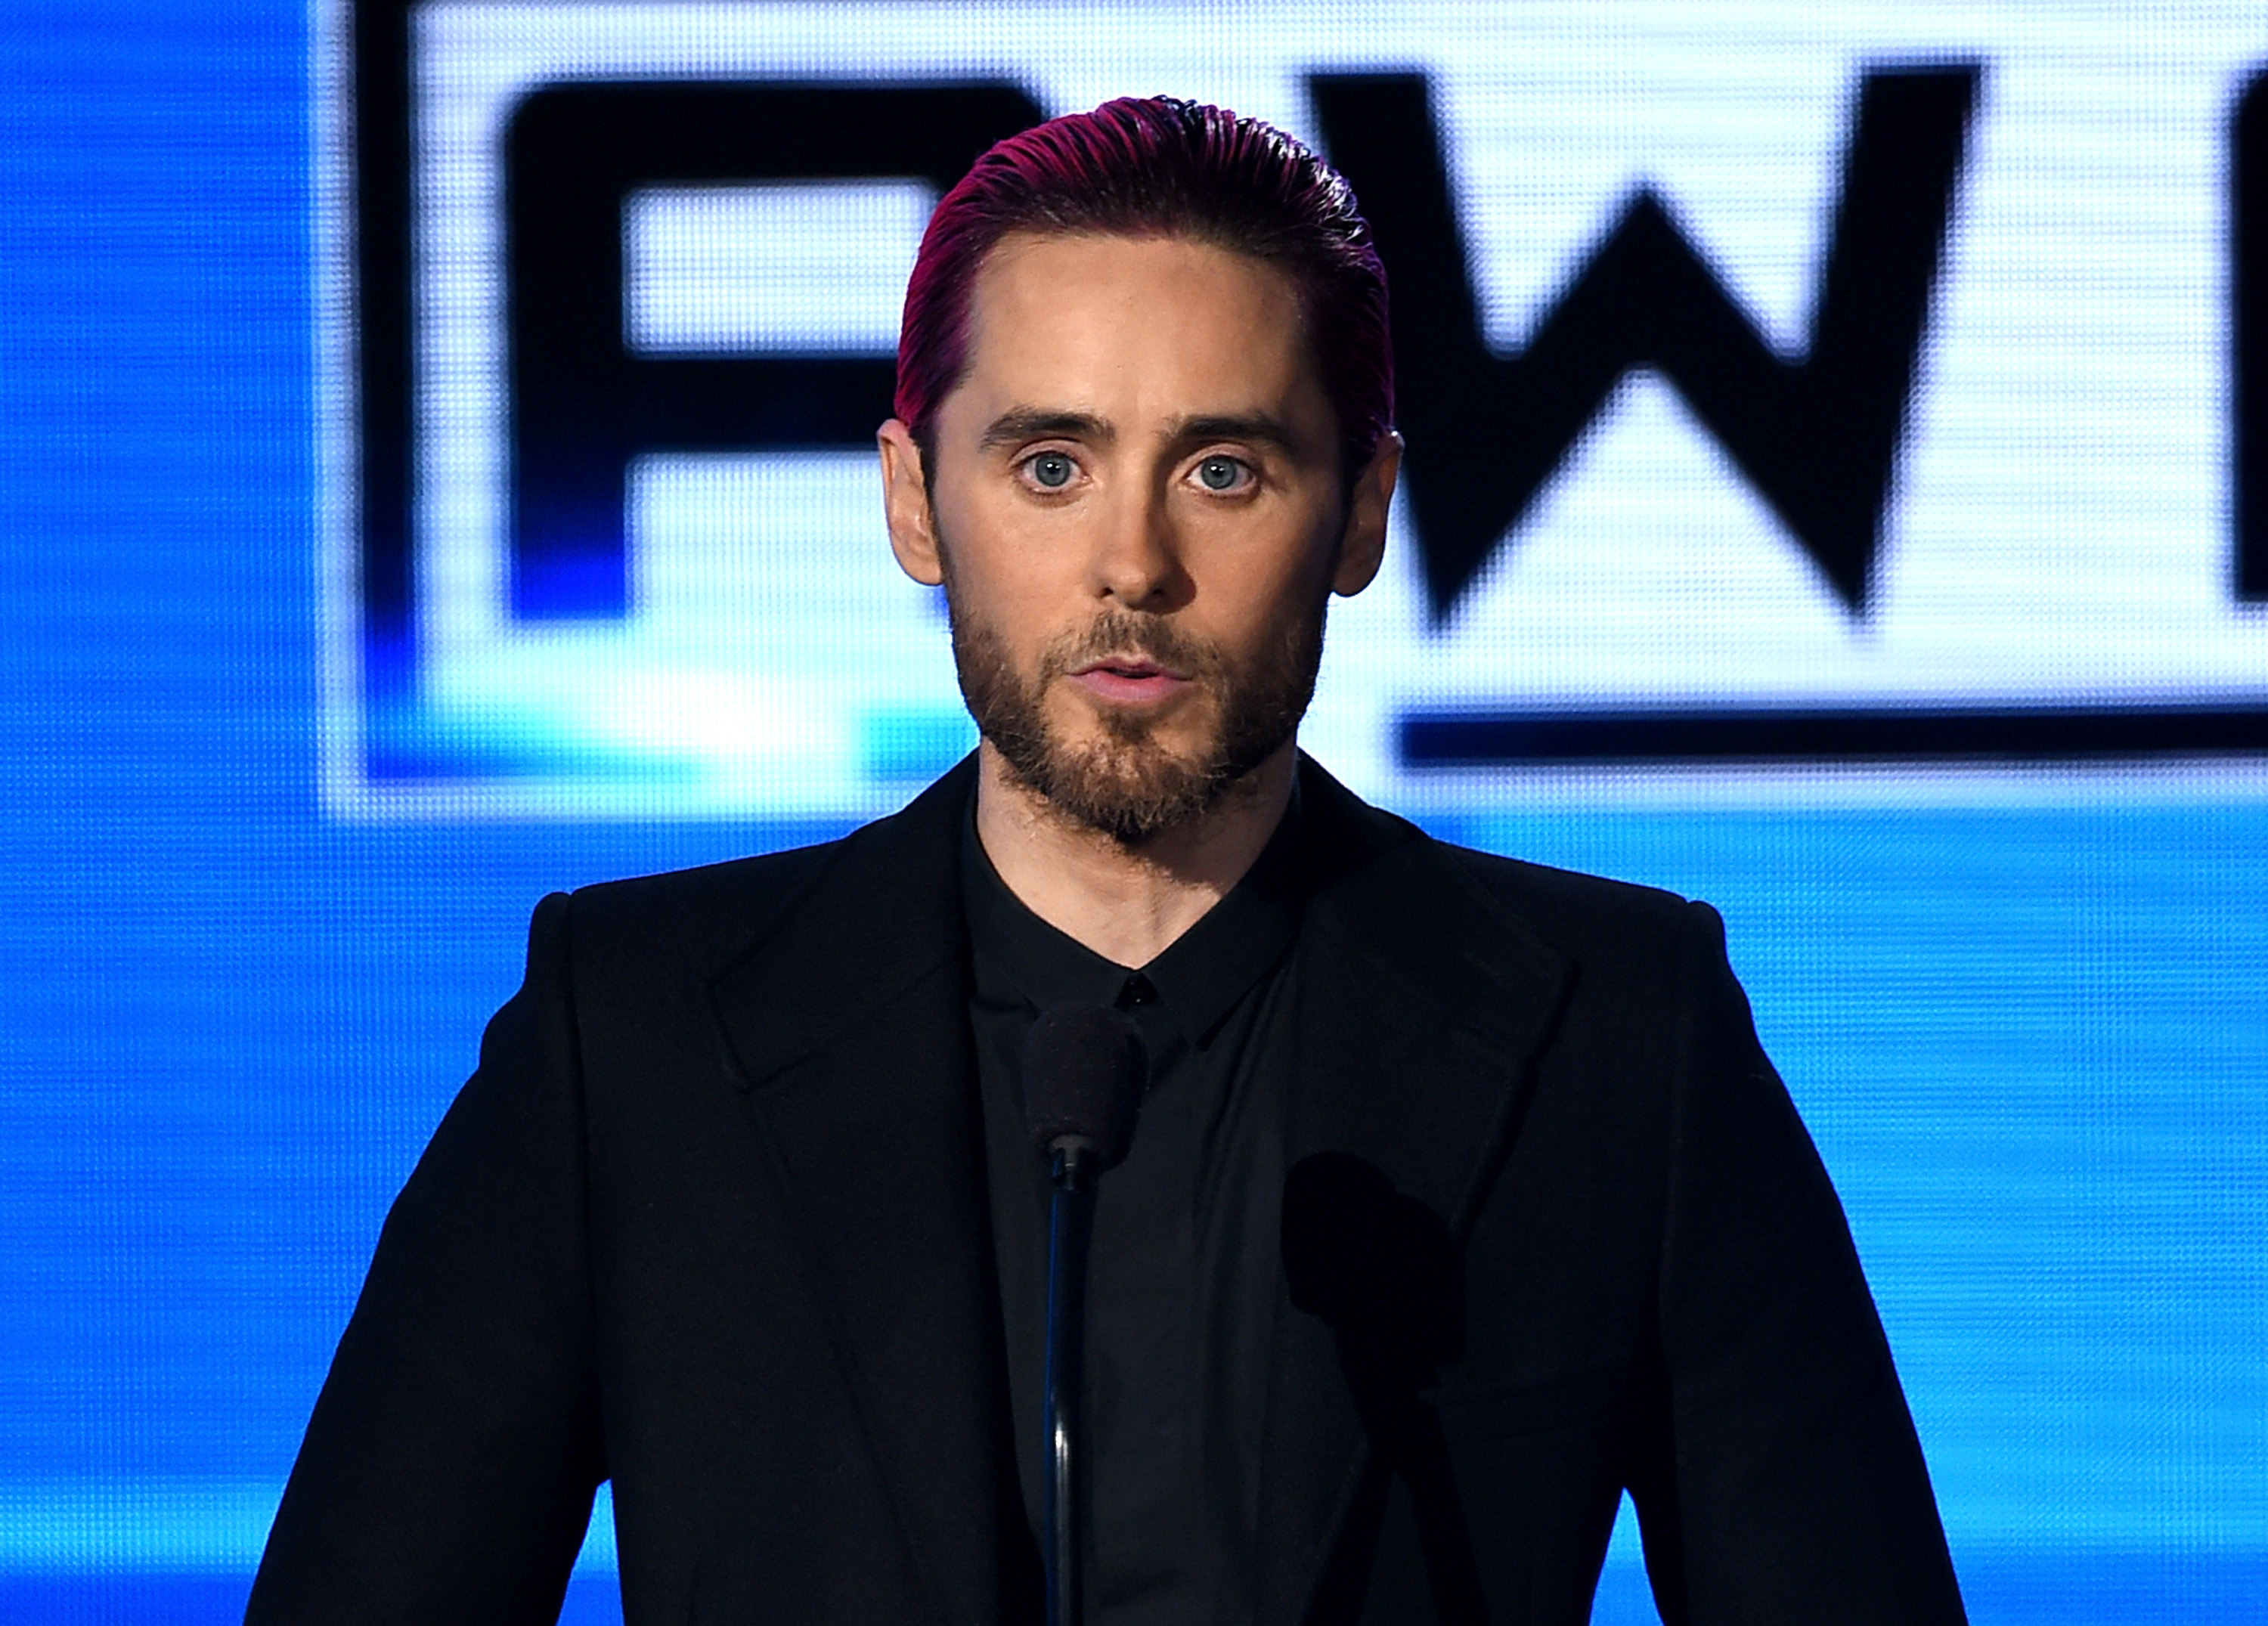 Jared Leto performs onstage during the 2015 American Music Awards at Microsoft Theater on November 22, 2015 in Los Angeles, California.